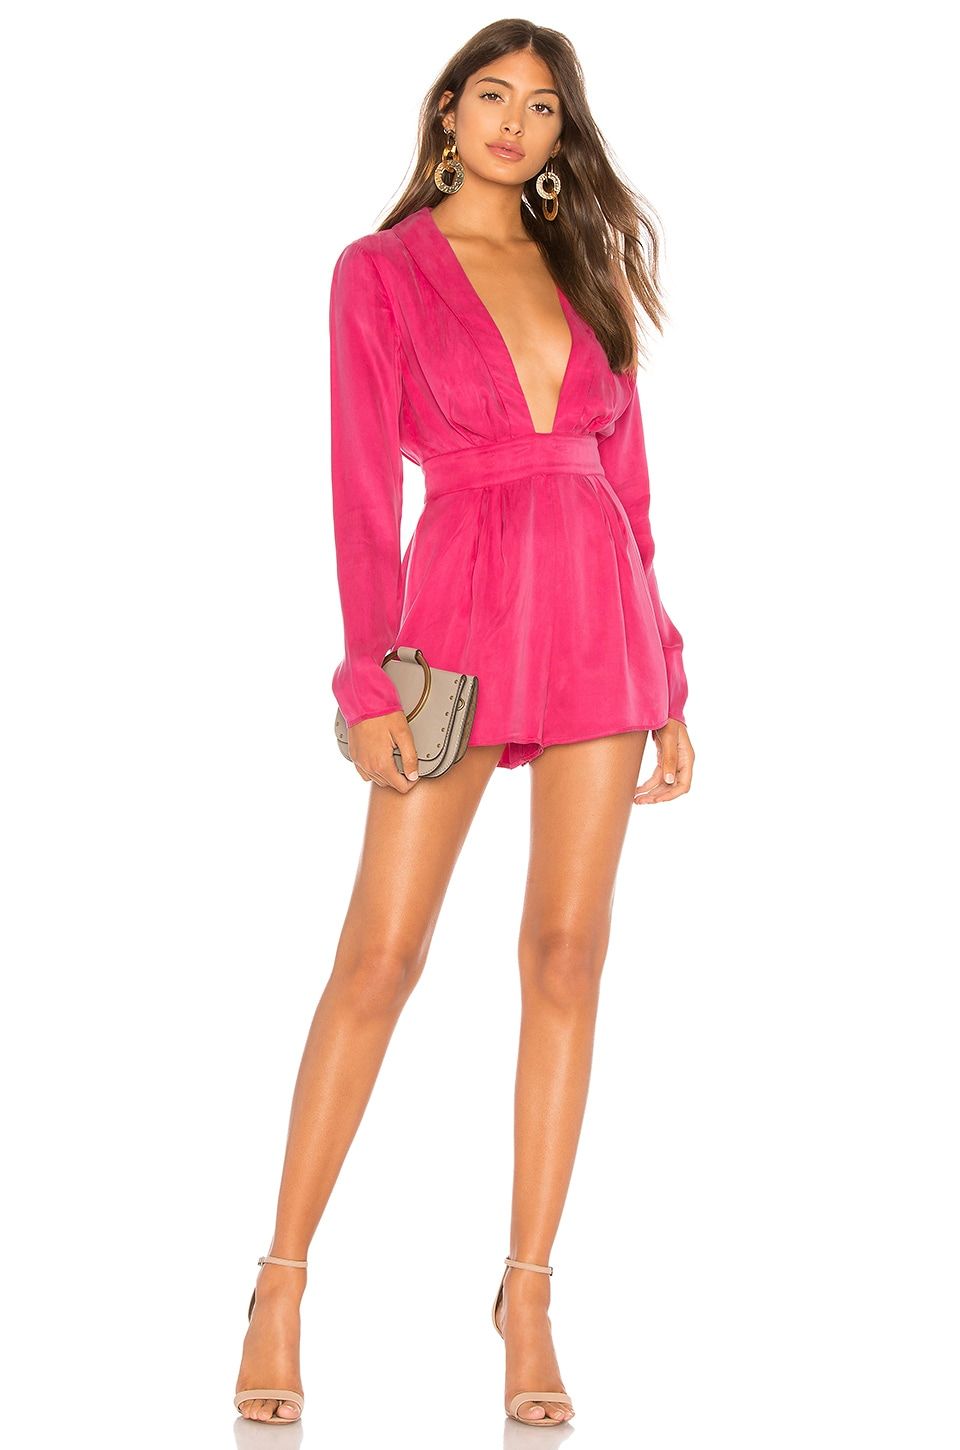 Lovers + Friends Tosh Romper in Hot Pink